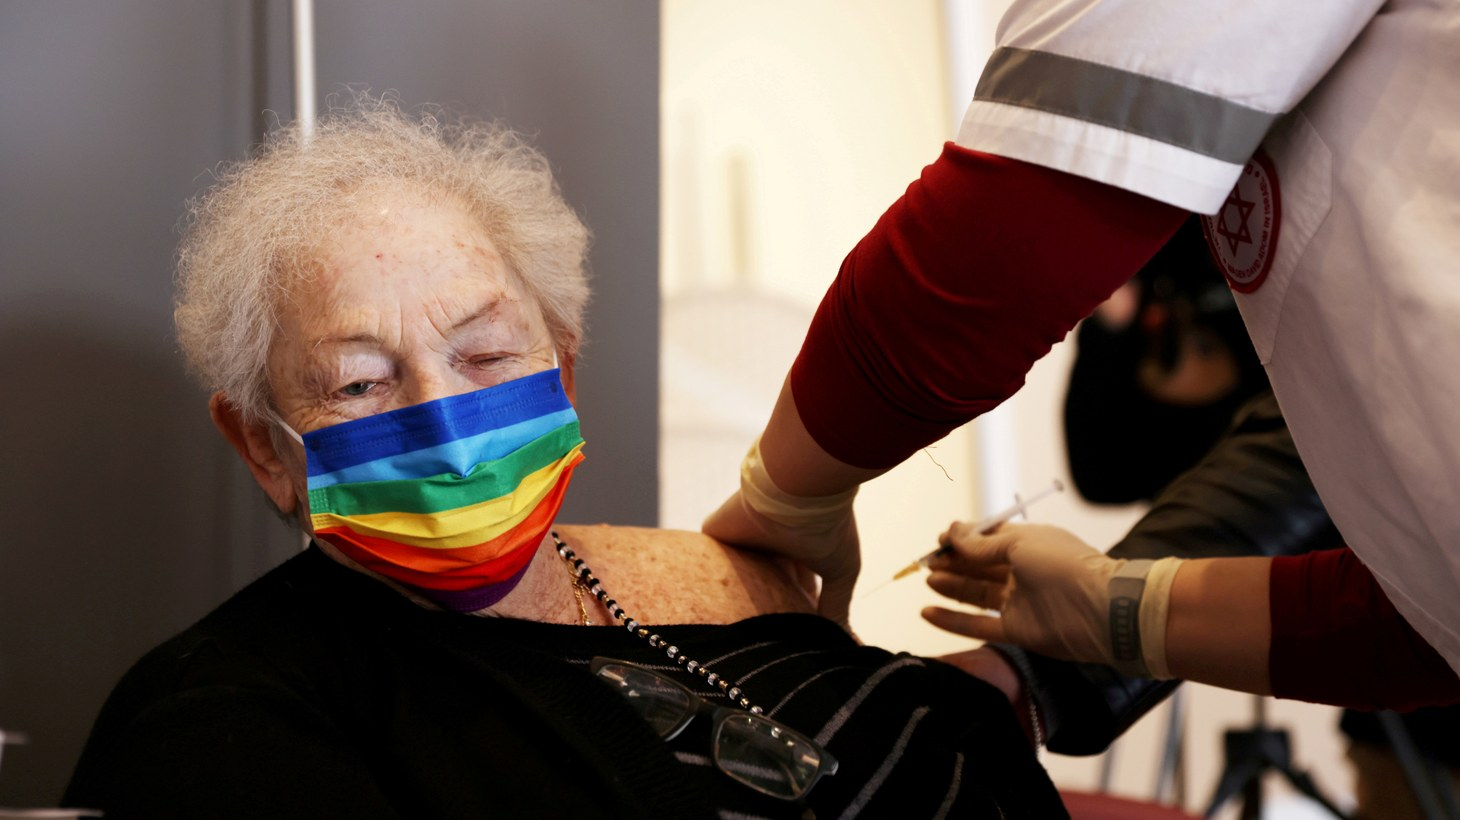 An elderly woman receives a booster shot of her vaccination against the coronavirus disease (COVID-19) at an assisted living facility, in Netanya, Israel January 19, 2021.